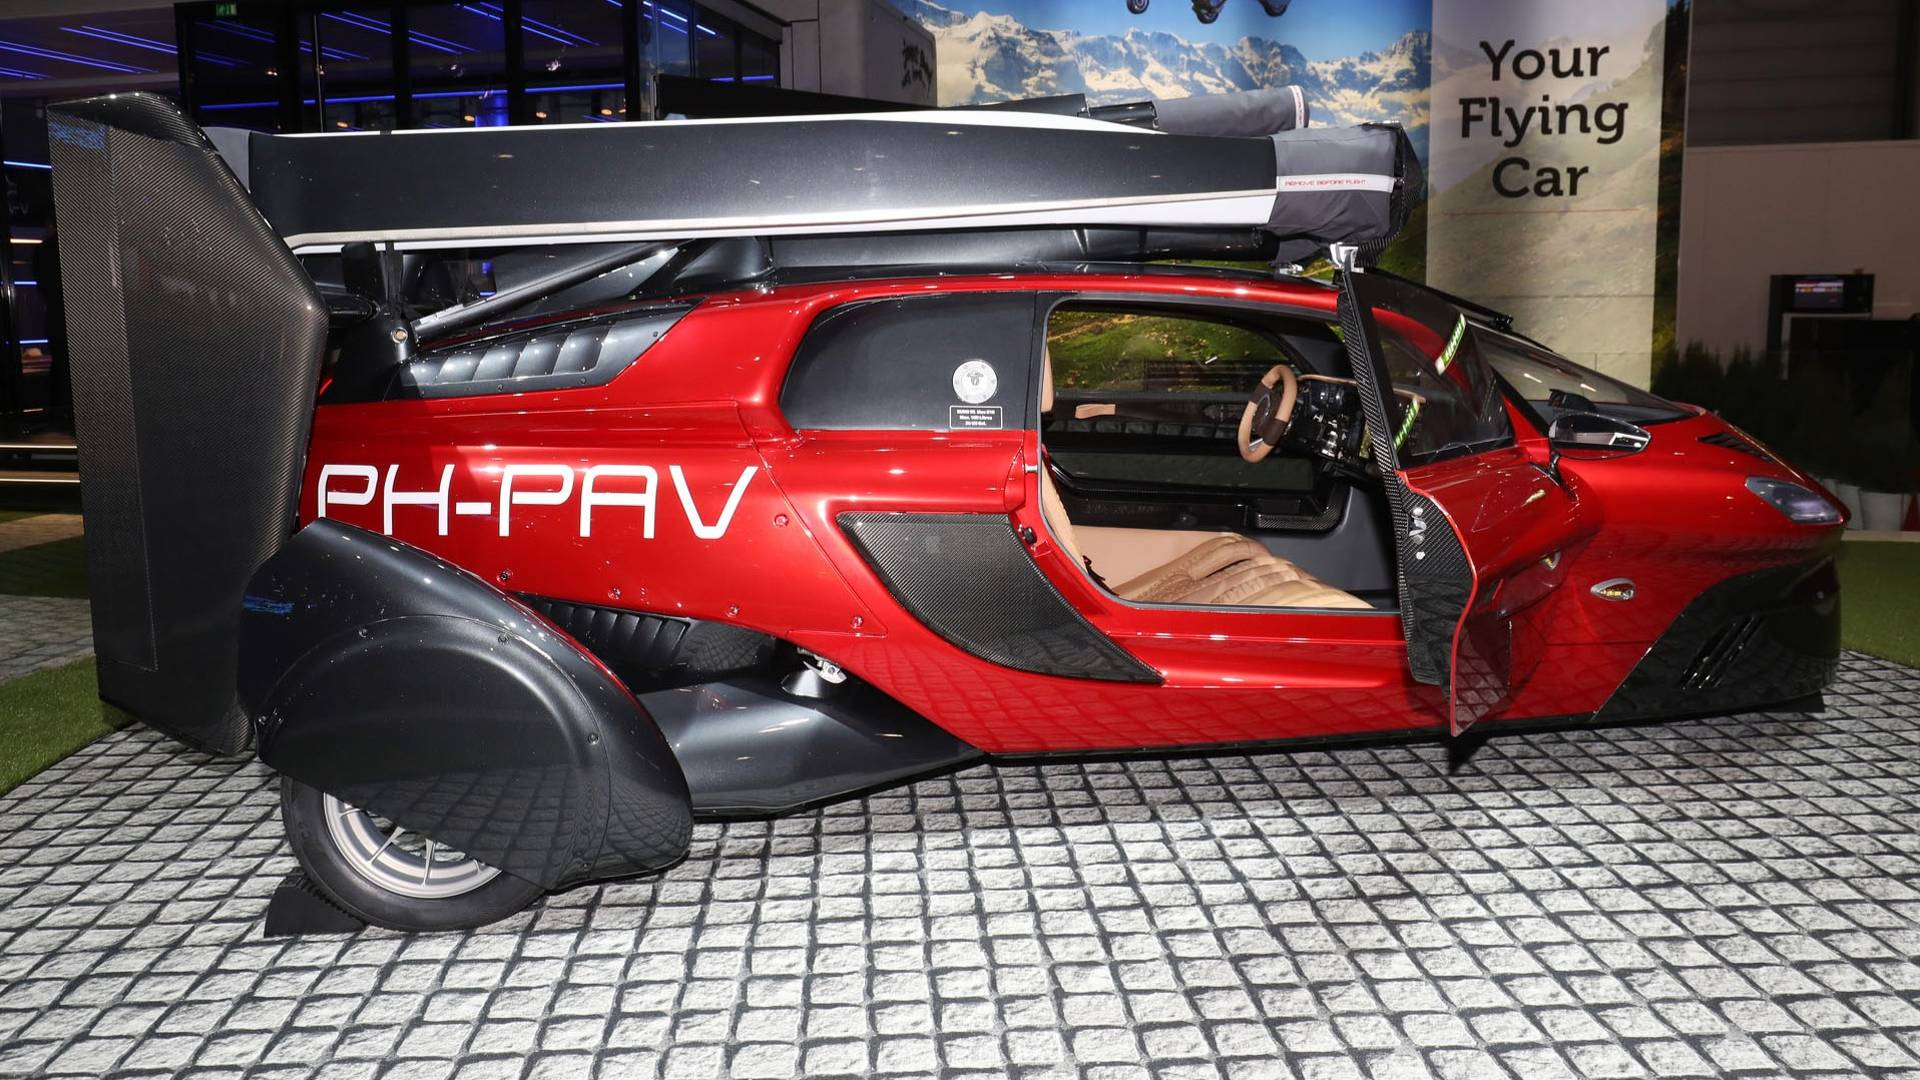 pal-v-liberty-flying-car (6)